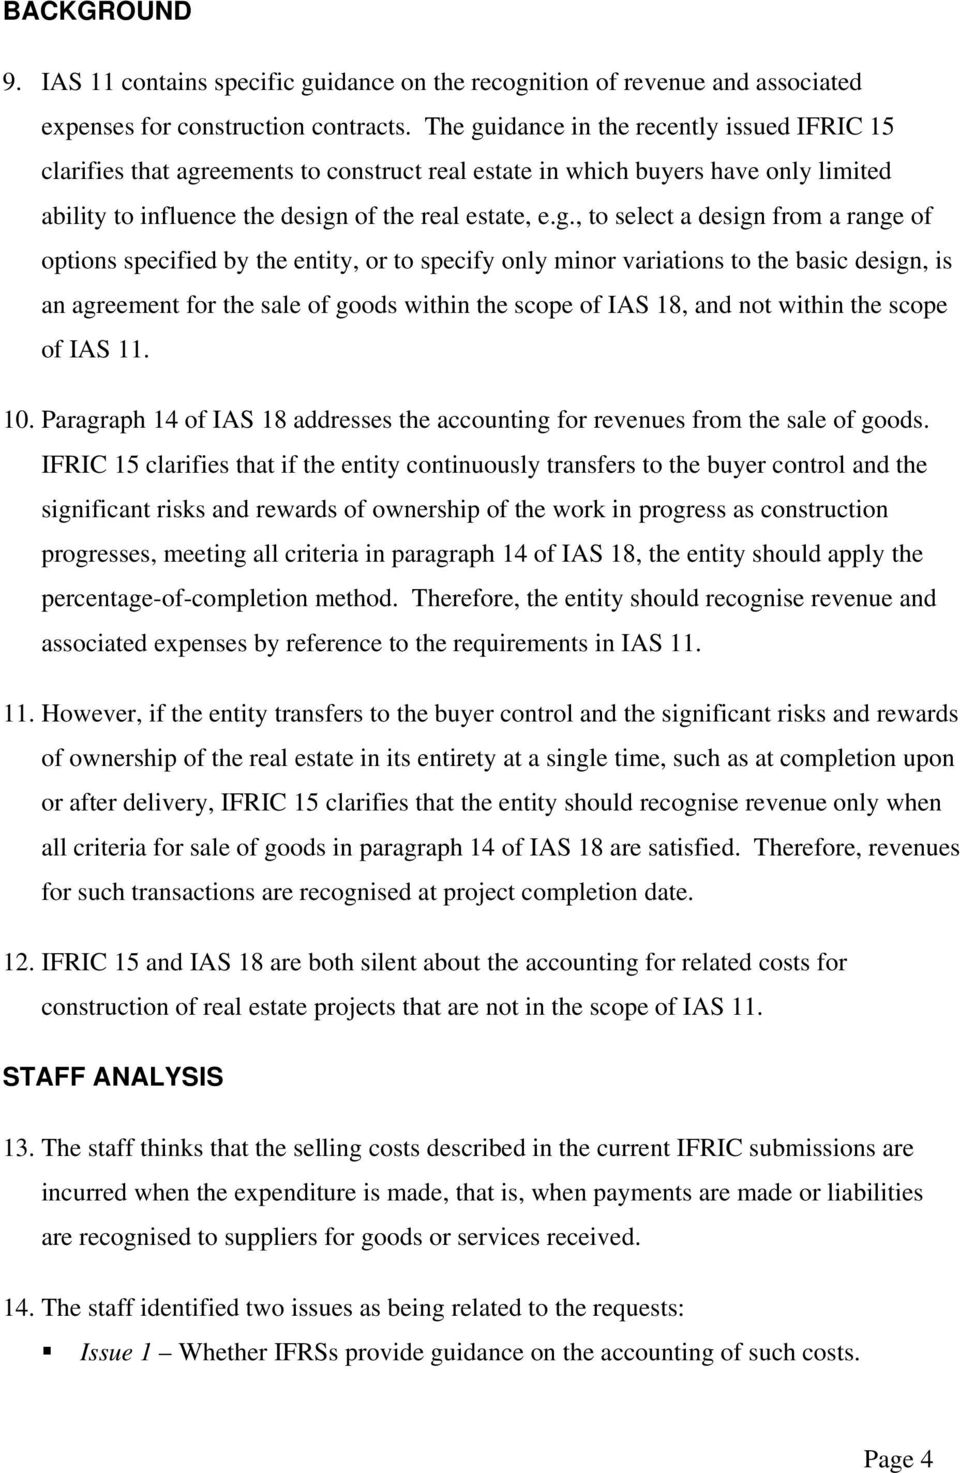 idance in the recently issued IFRIC 15 clarifies that agr